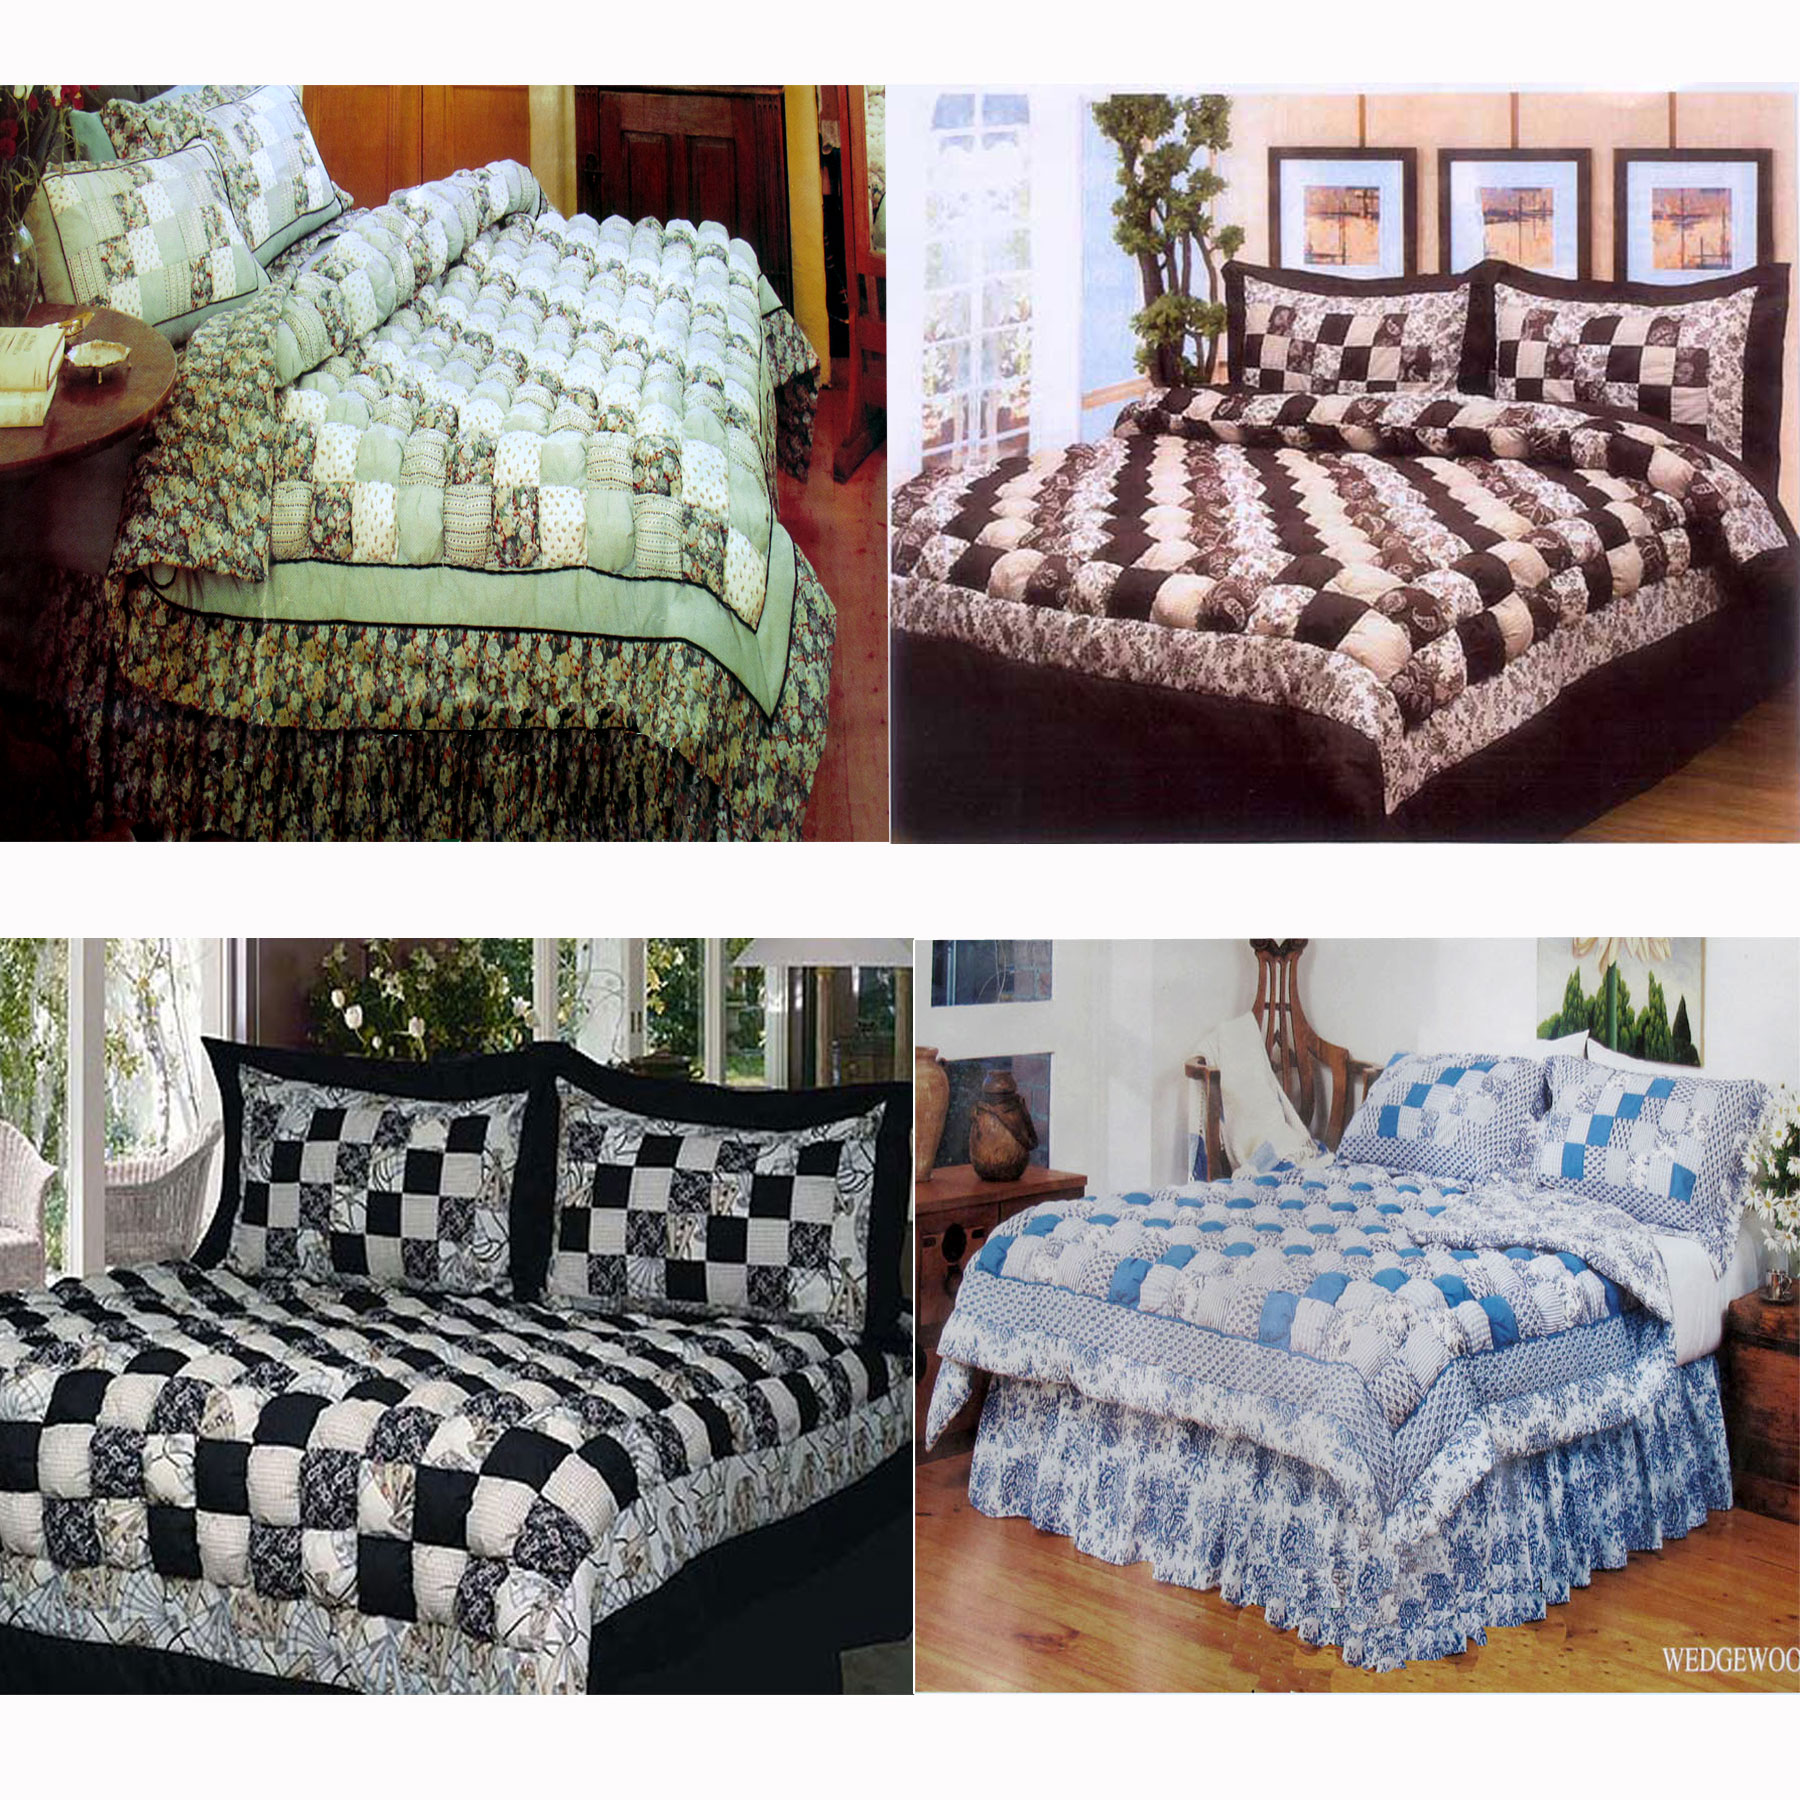 4 Pce Patchwork Puff Comforter Set Valance Double Or Queen Or